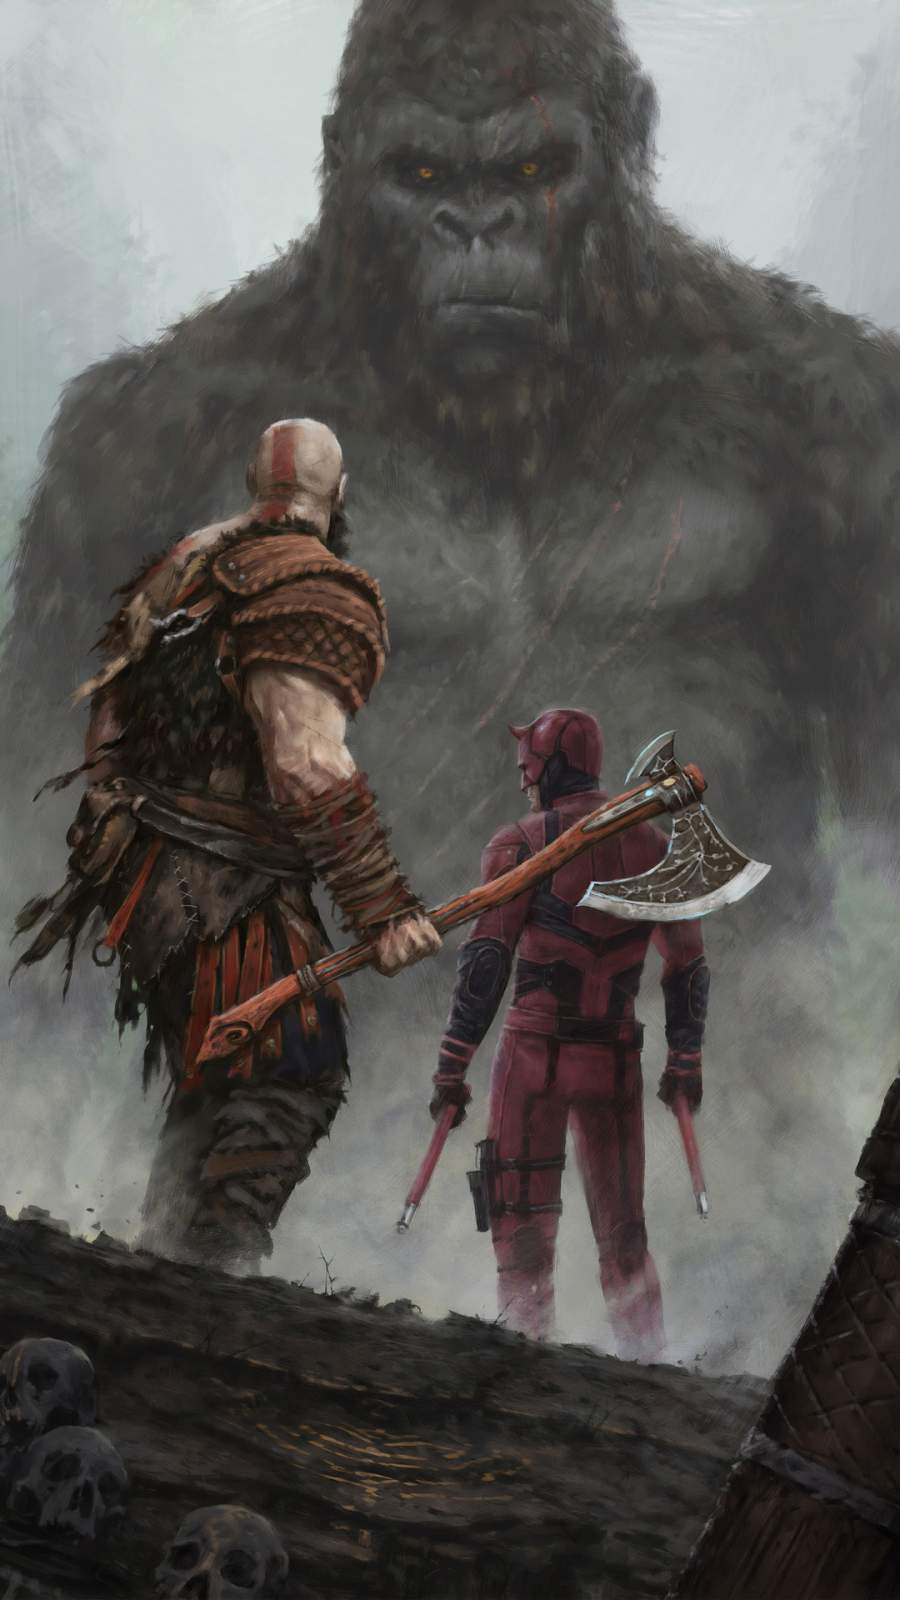 Cute Girly Infinity Wallpapers Kratos And Dare Devil Vs King Kong Iphone Wallpaper